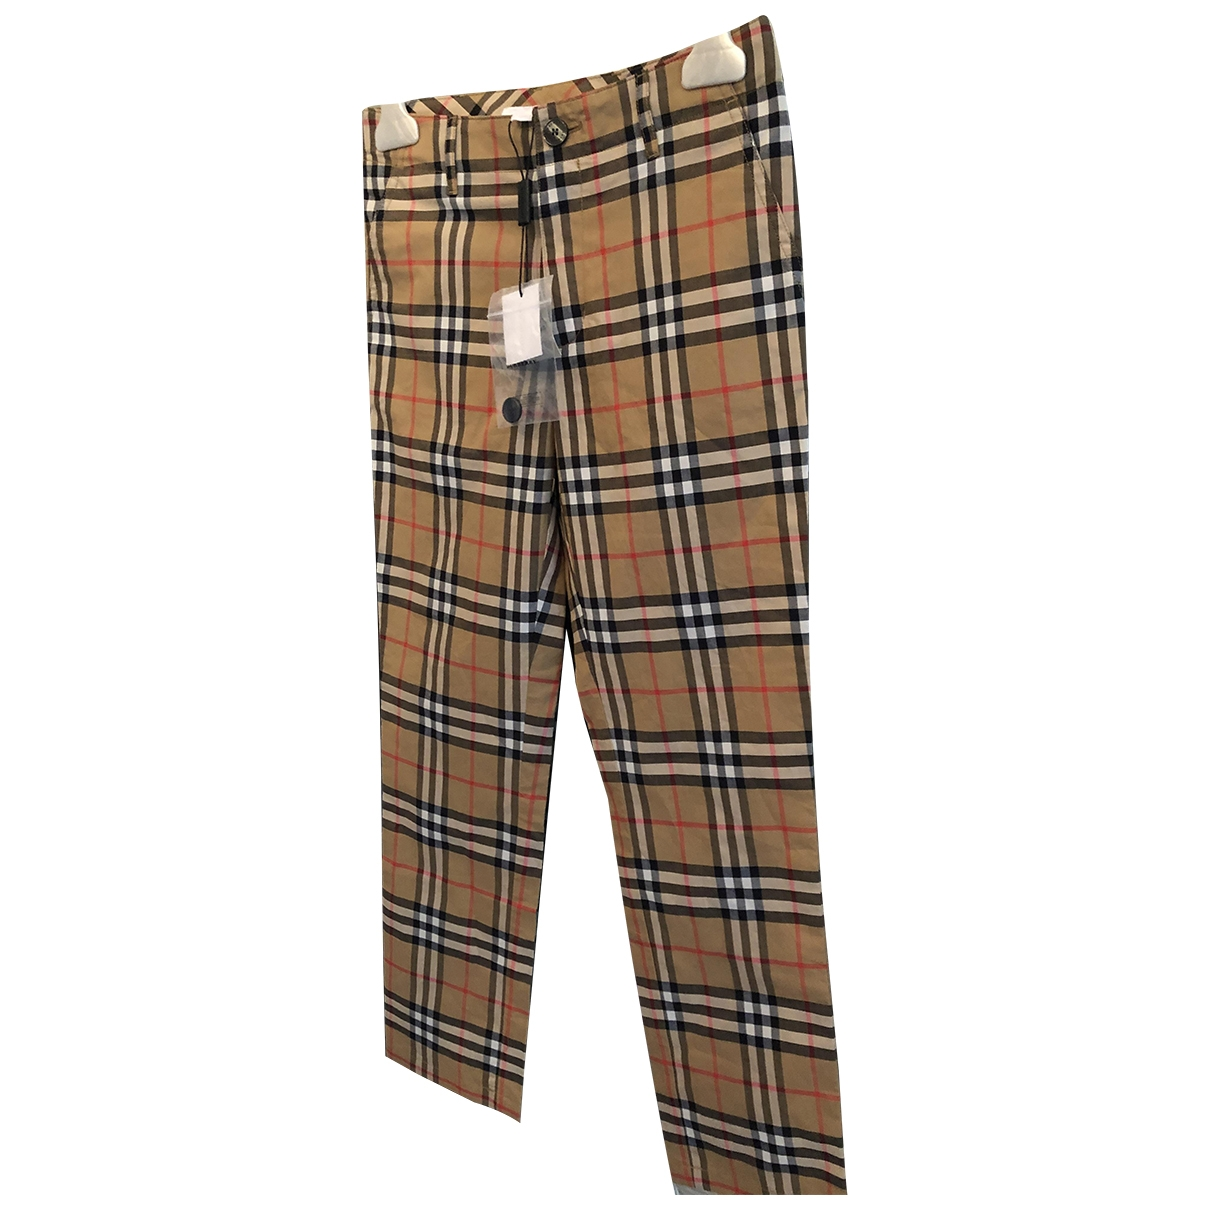 Burberry \N Multicolour Cotton Trousers for Kids 10 years - until 56 inches UK